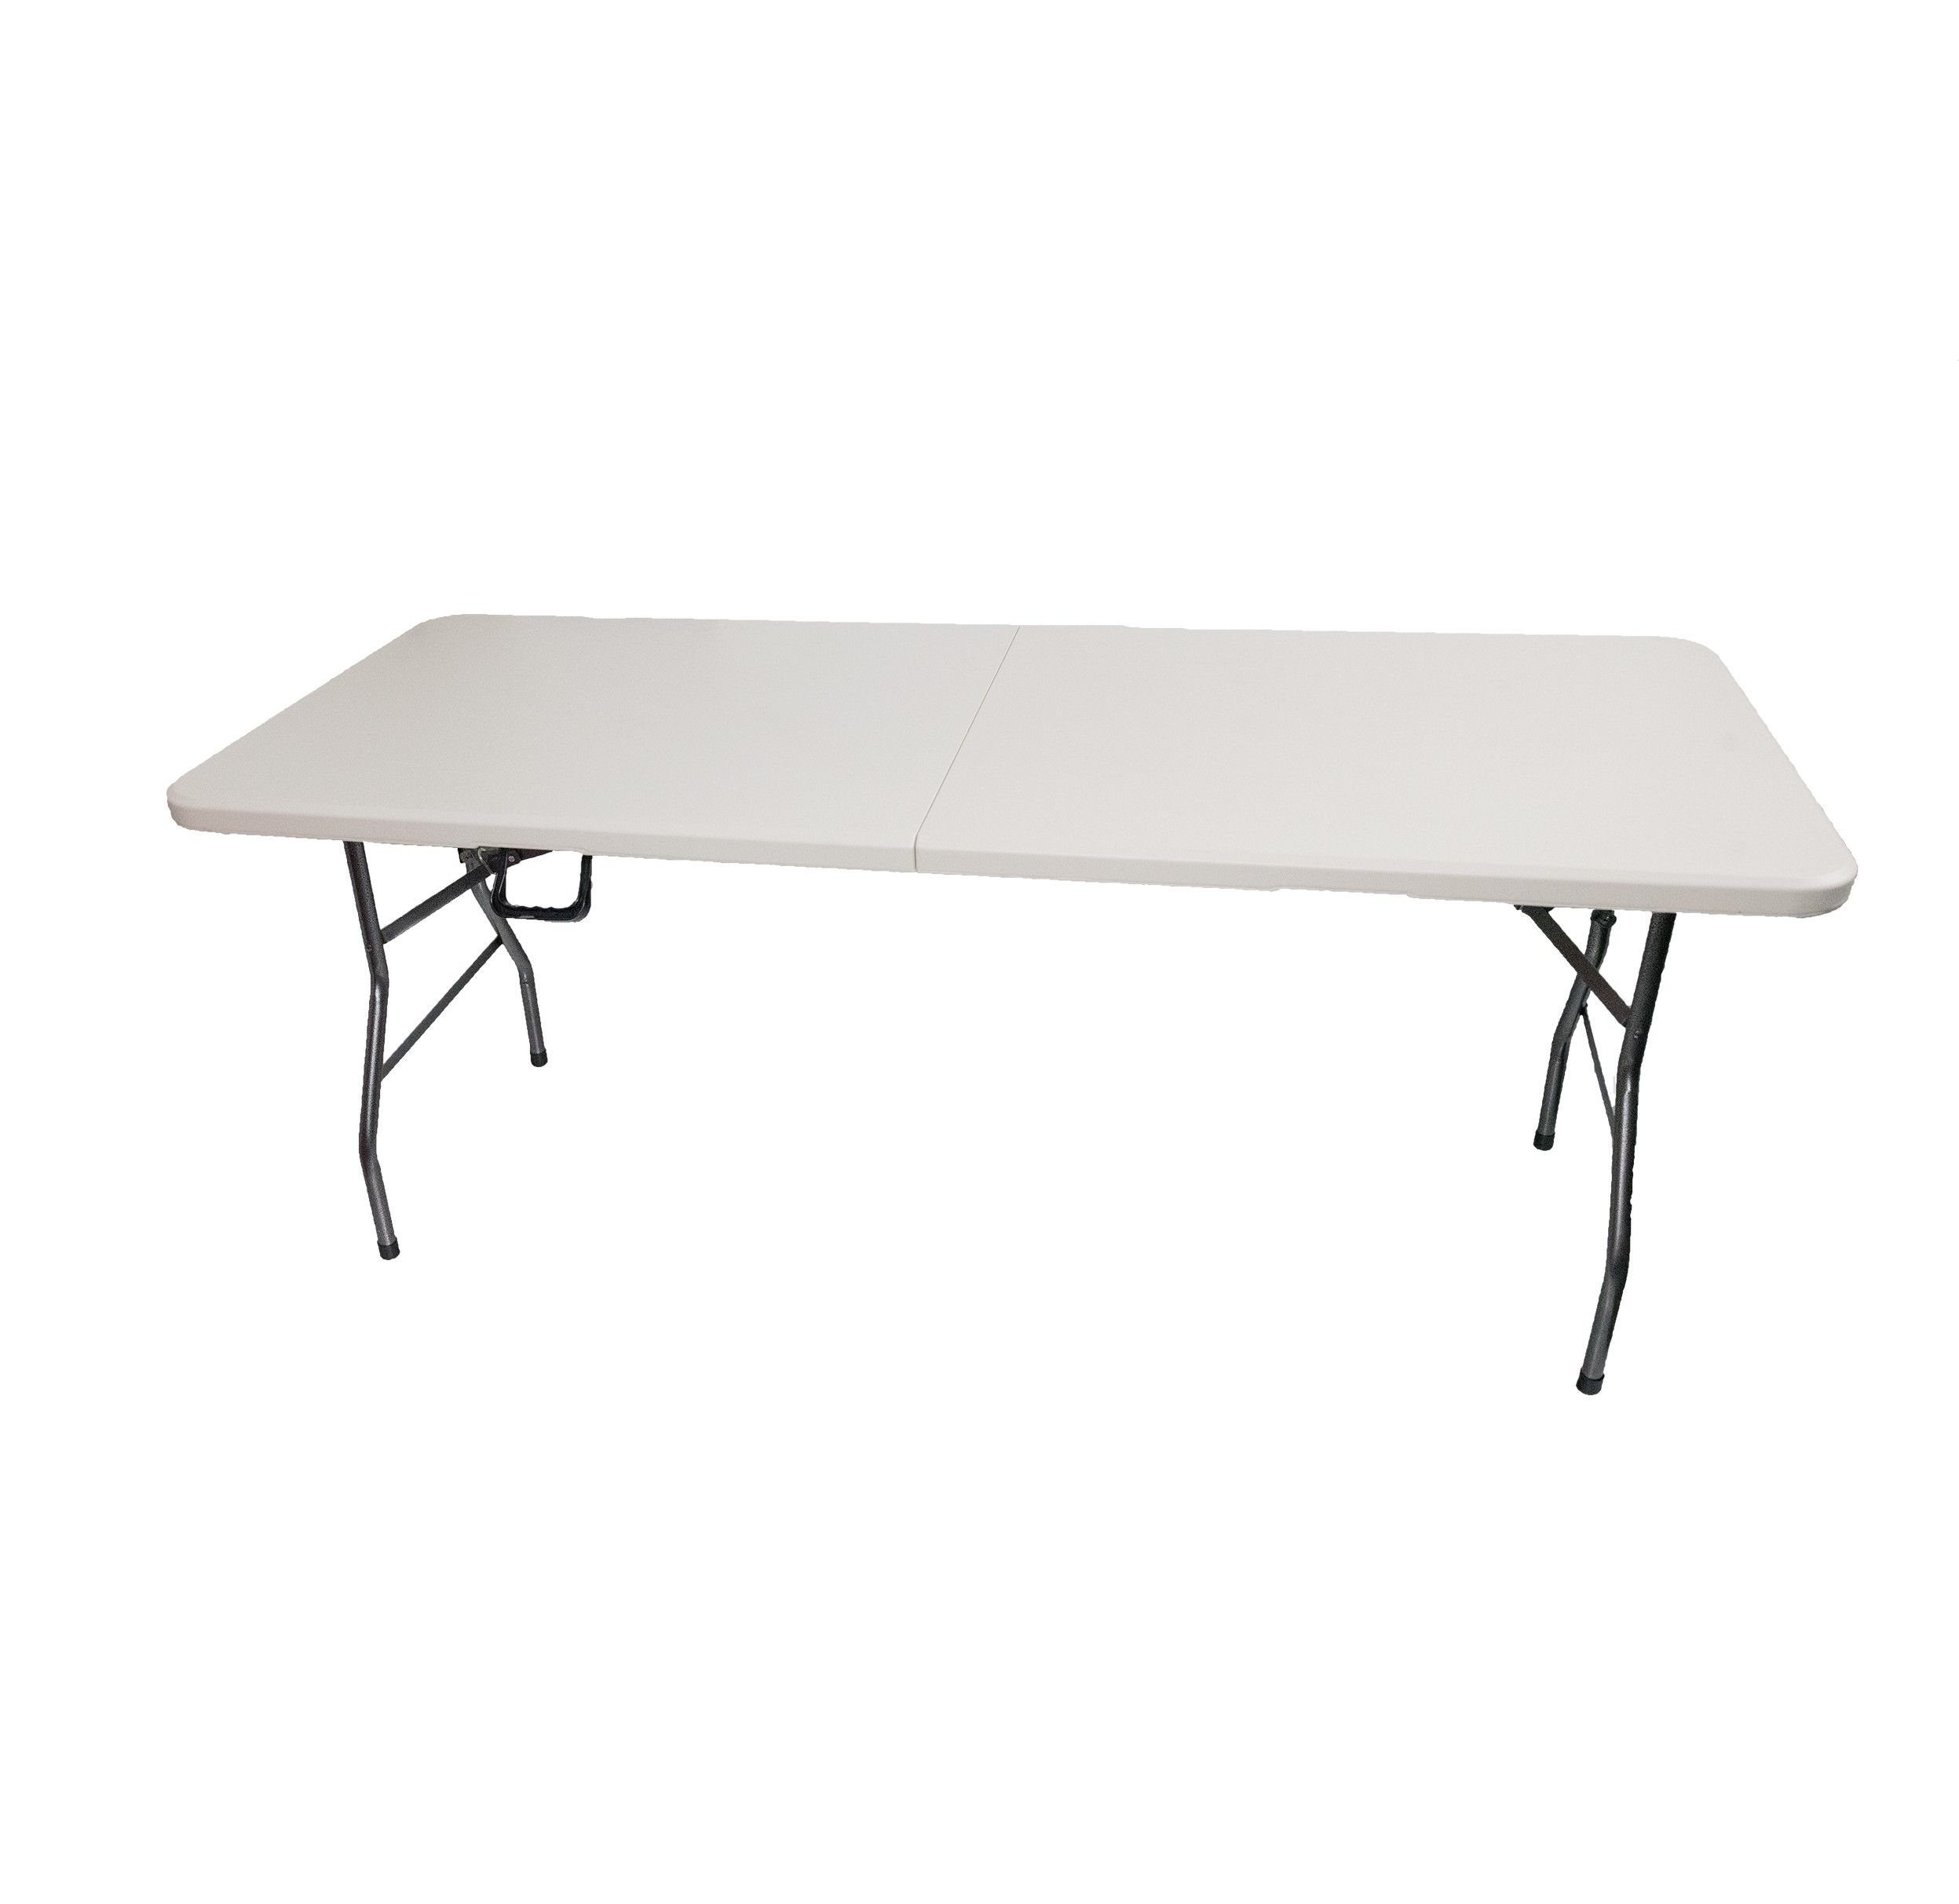 6 Feet Wide Portable Folding Table Lightweight W Built In Carry Handle Commercial Grade Collapsible Steel Legs Hdpe Plast Folding Table Table Plastic Tables